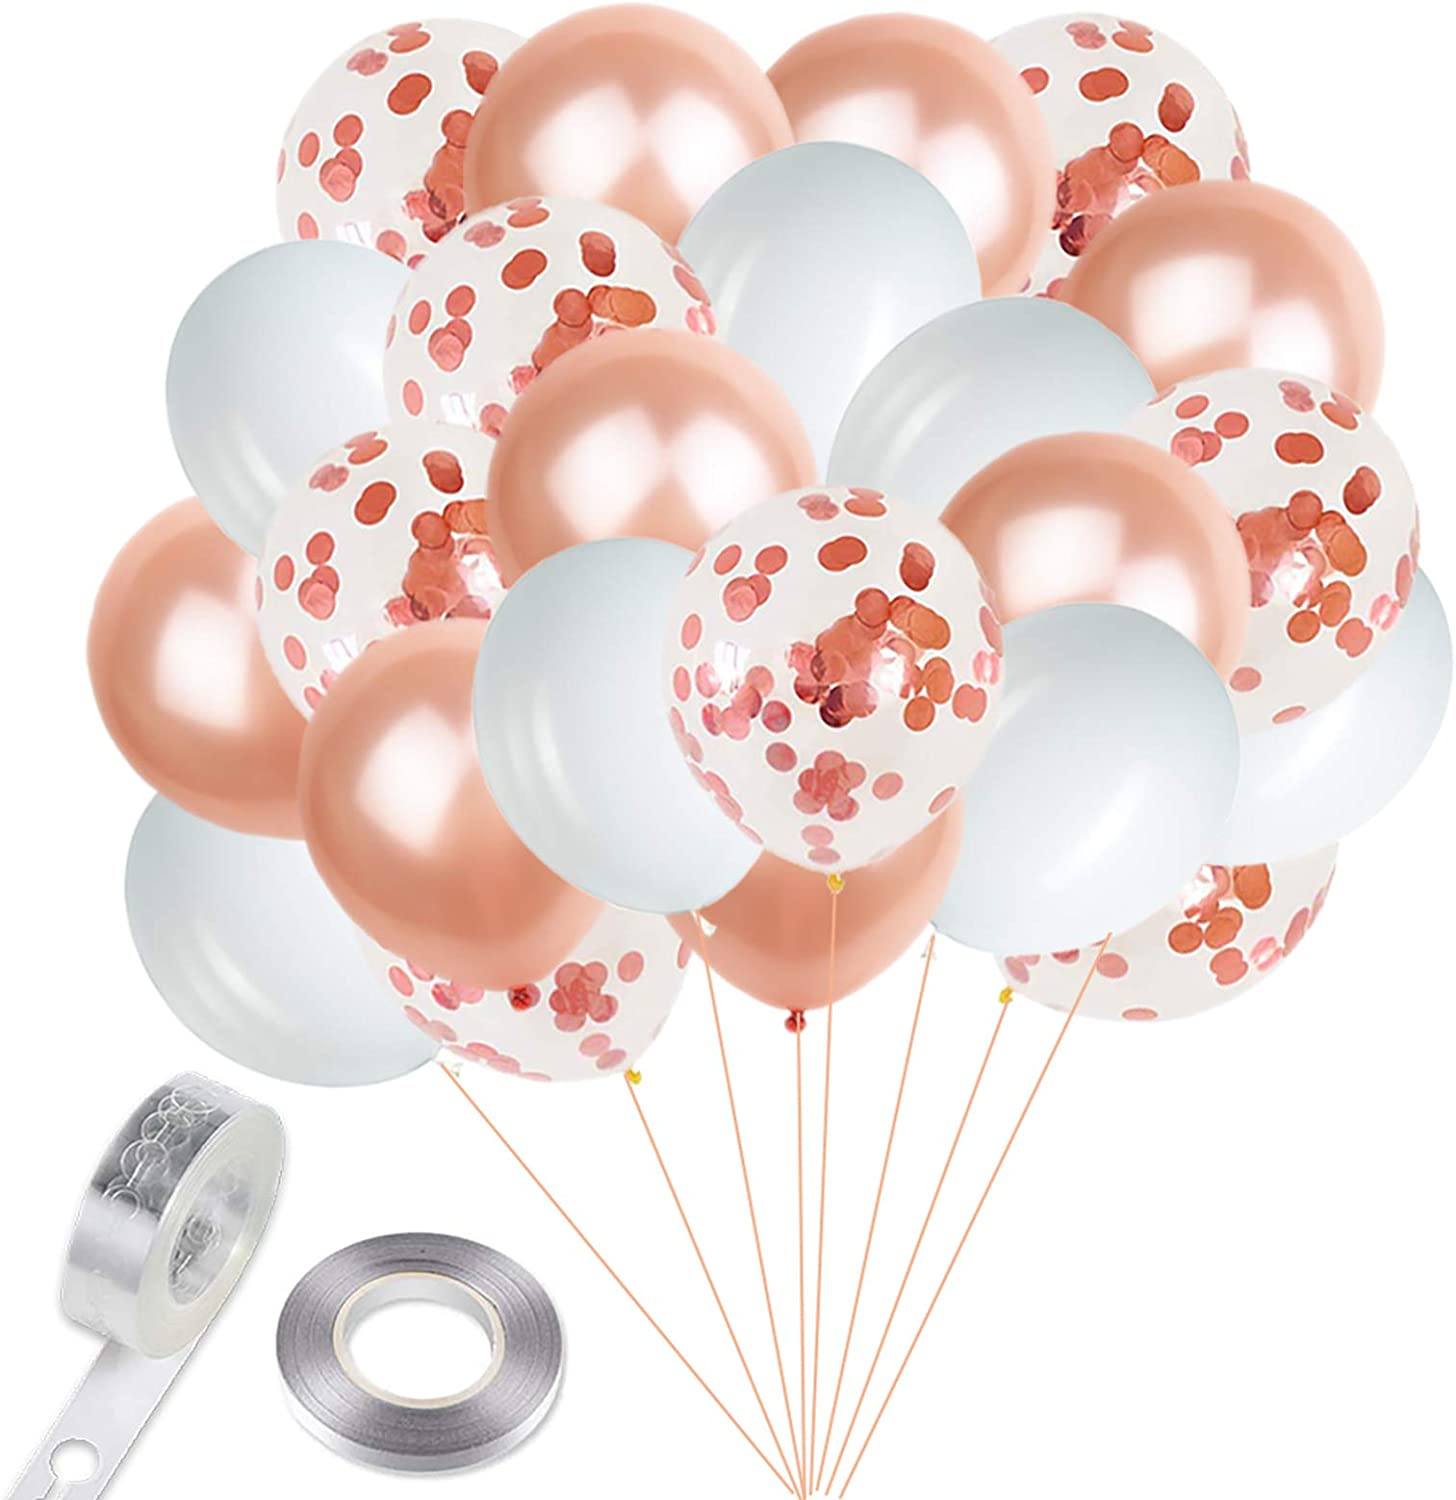 Bridal Shower Decor Baby Shower Balloons Shabby Chic 6 Pack Wedding Balloons Rose Gold and Blush Balloons